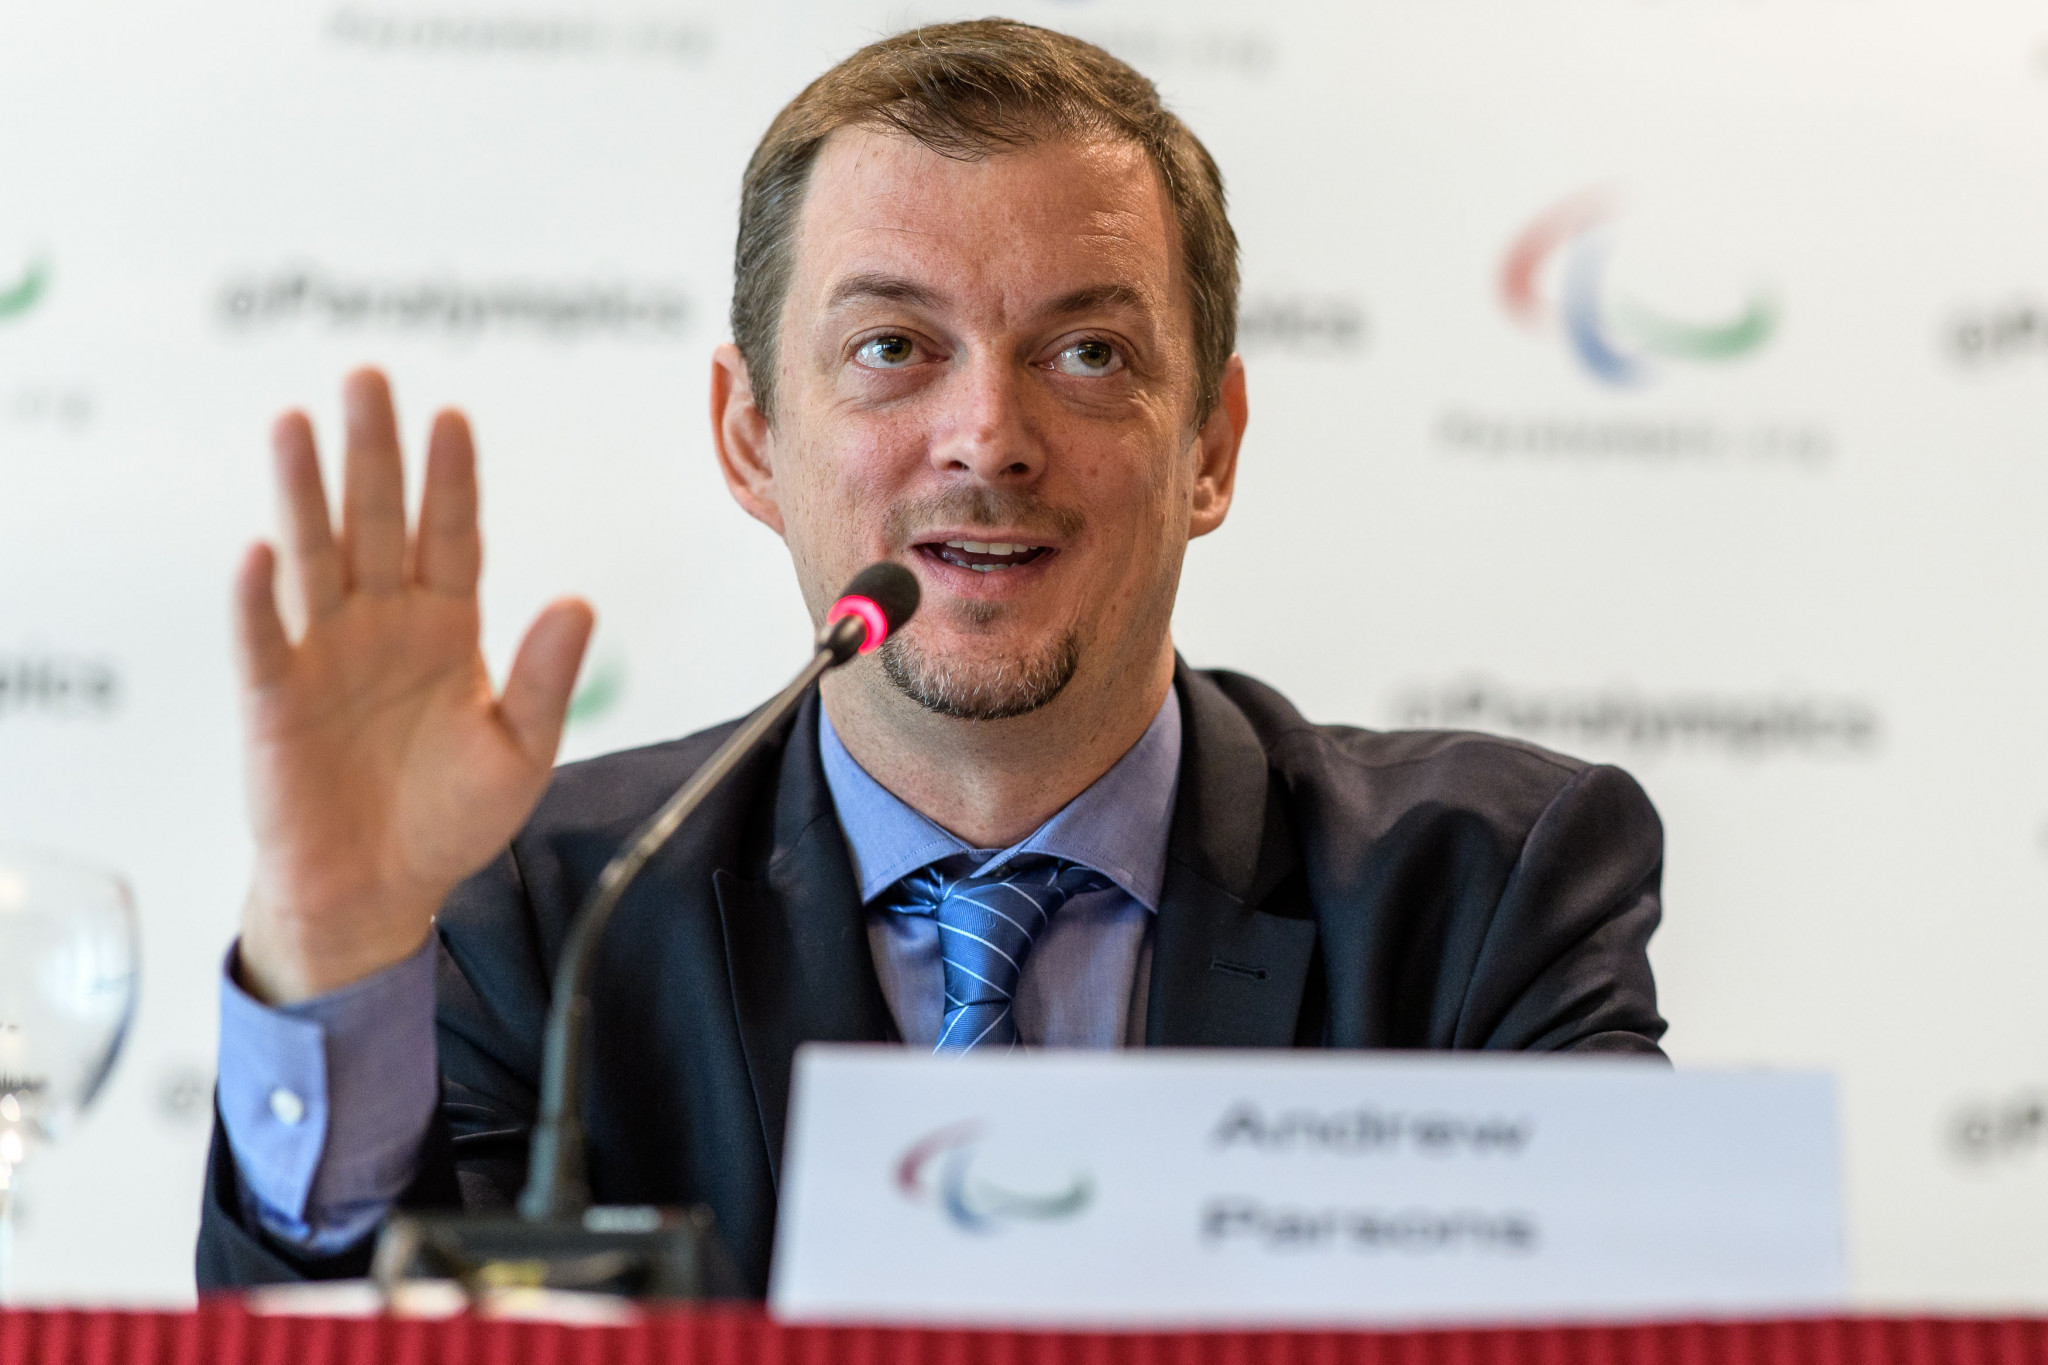 IPC President Andrew Parsons is likely to visit the IPC Academy Campus in Pyeongchang ©Getty Images